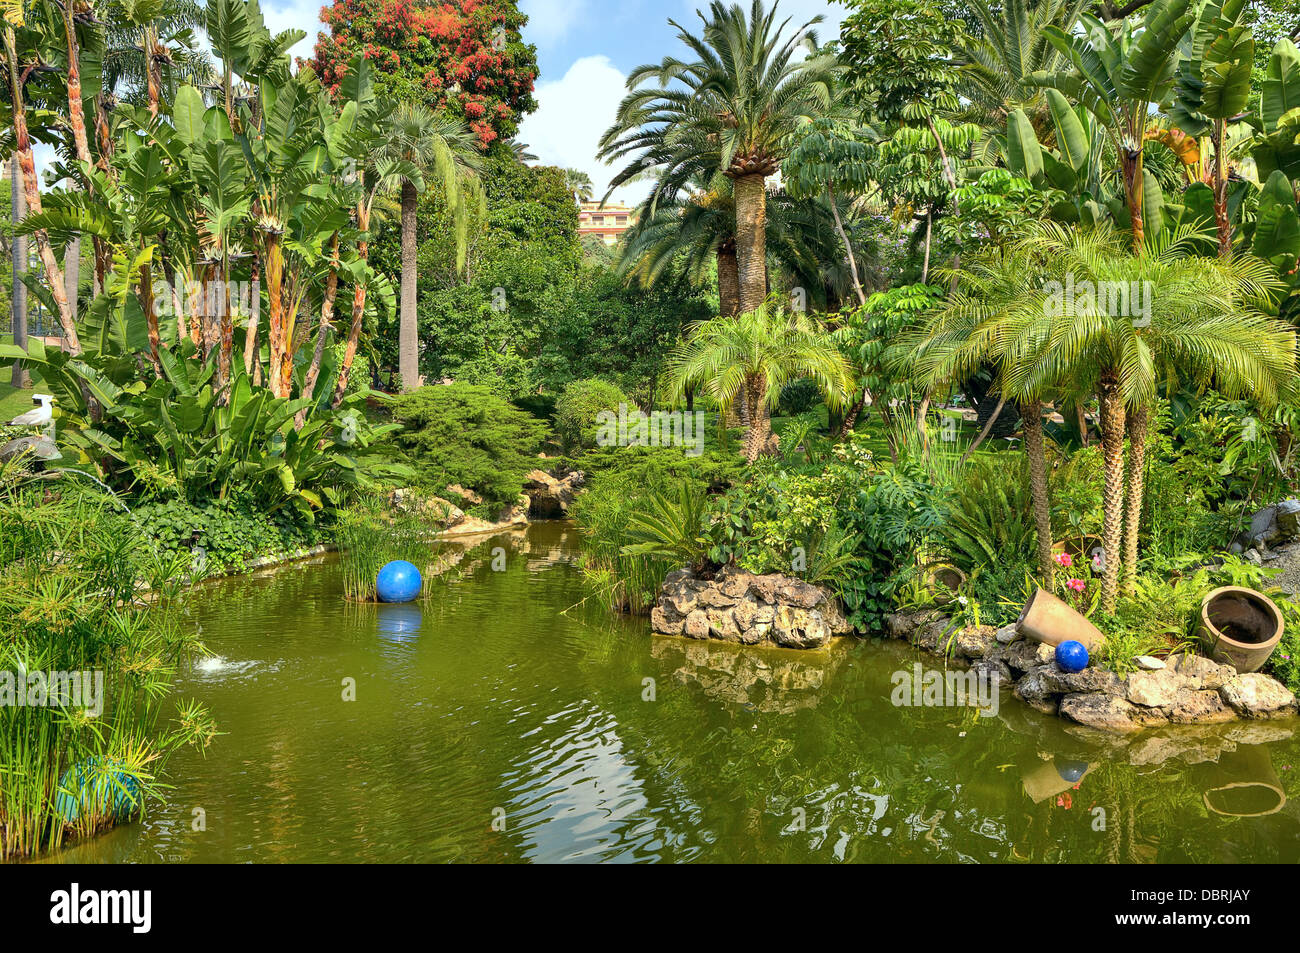 Little pond among trees and palms at the middle of urban tropical park in Monte Carlo, Monaco. - Stock Image